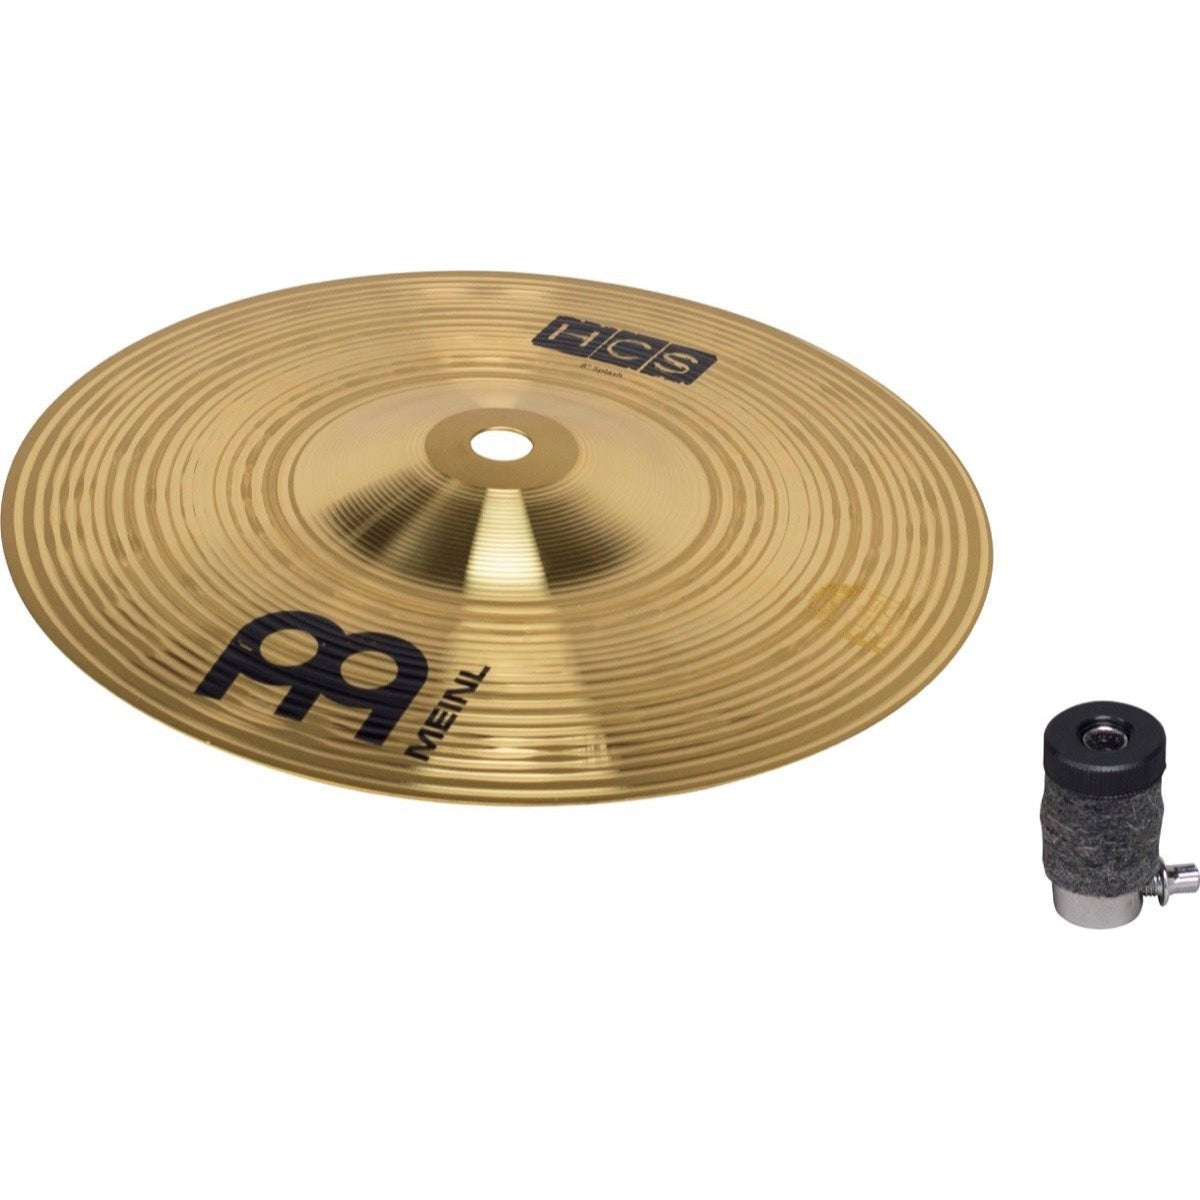 Tama CSH5 Hi-Hat Stack Compact Cymbal Stacker, Pack with Meinl HCS 8 Inch Splash Cymbal